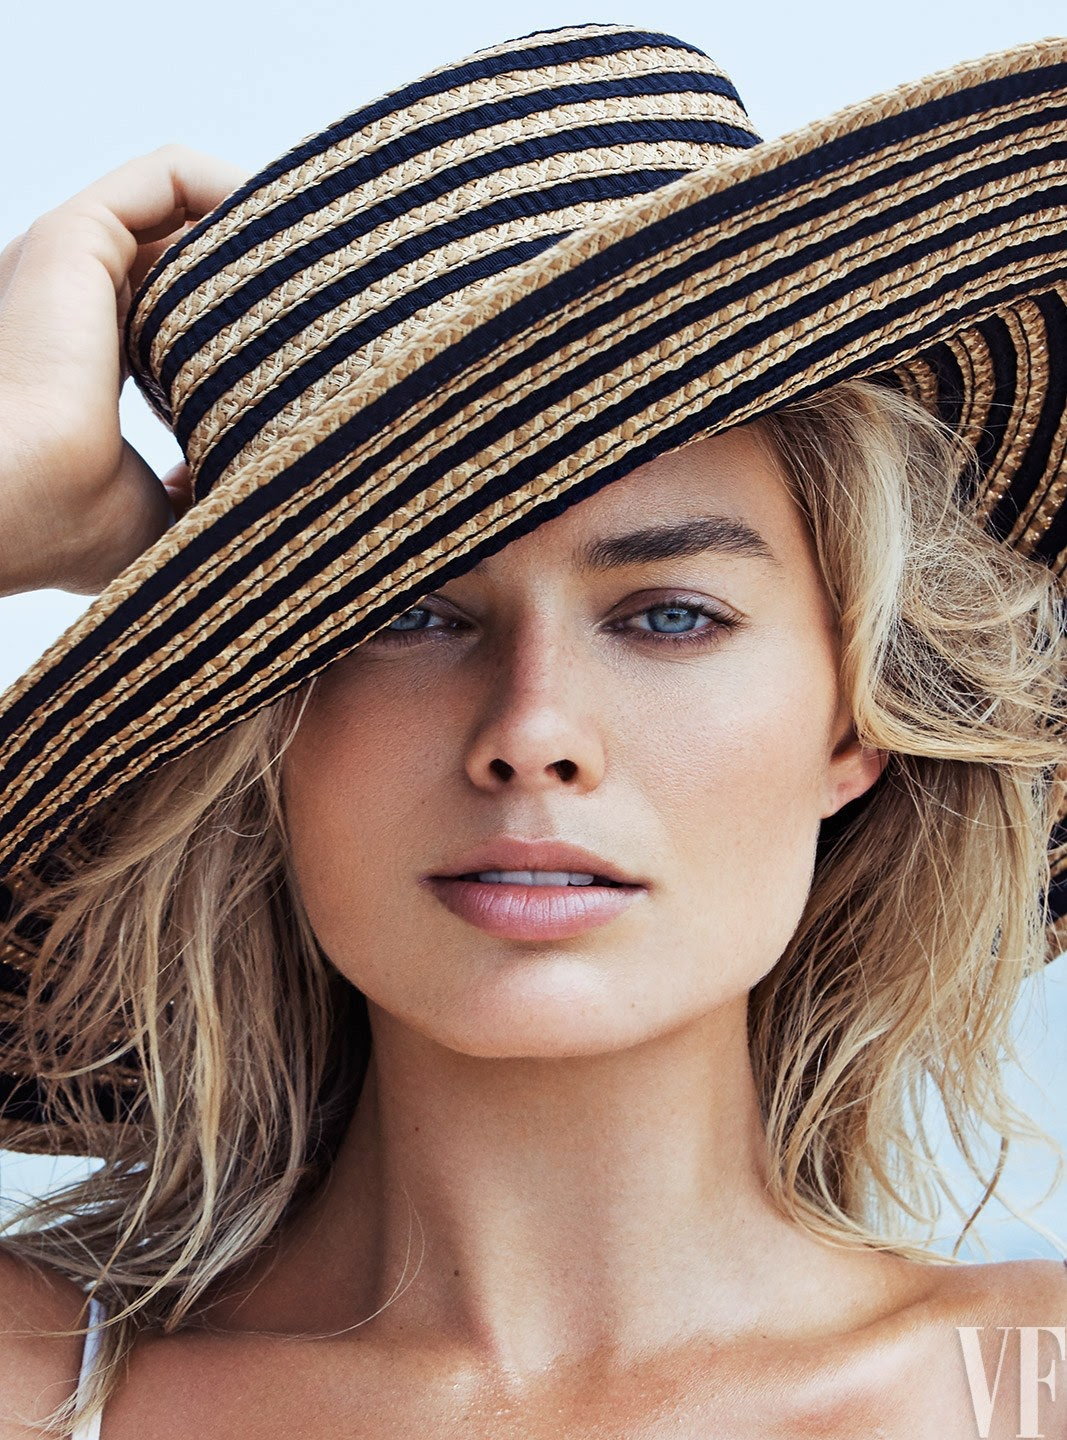 Aussie Actress Margot Robbie Looks Pretty Fantastic The Cover Vanity Fair Lifeoutandy